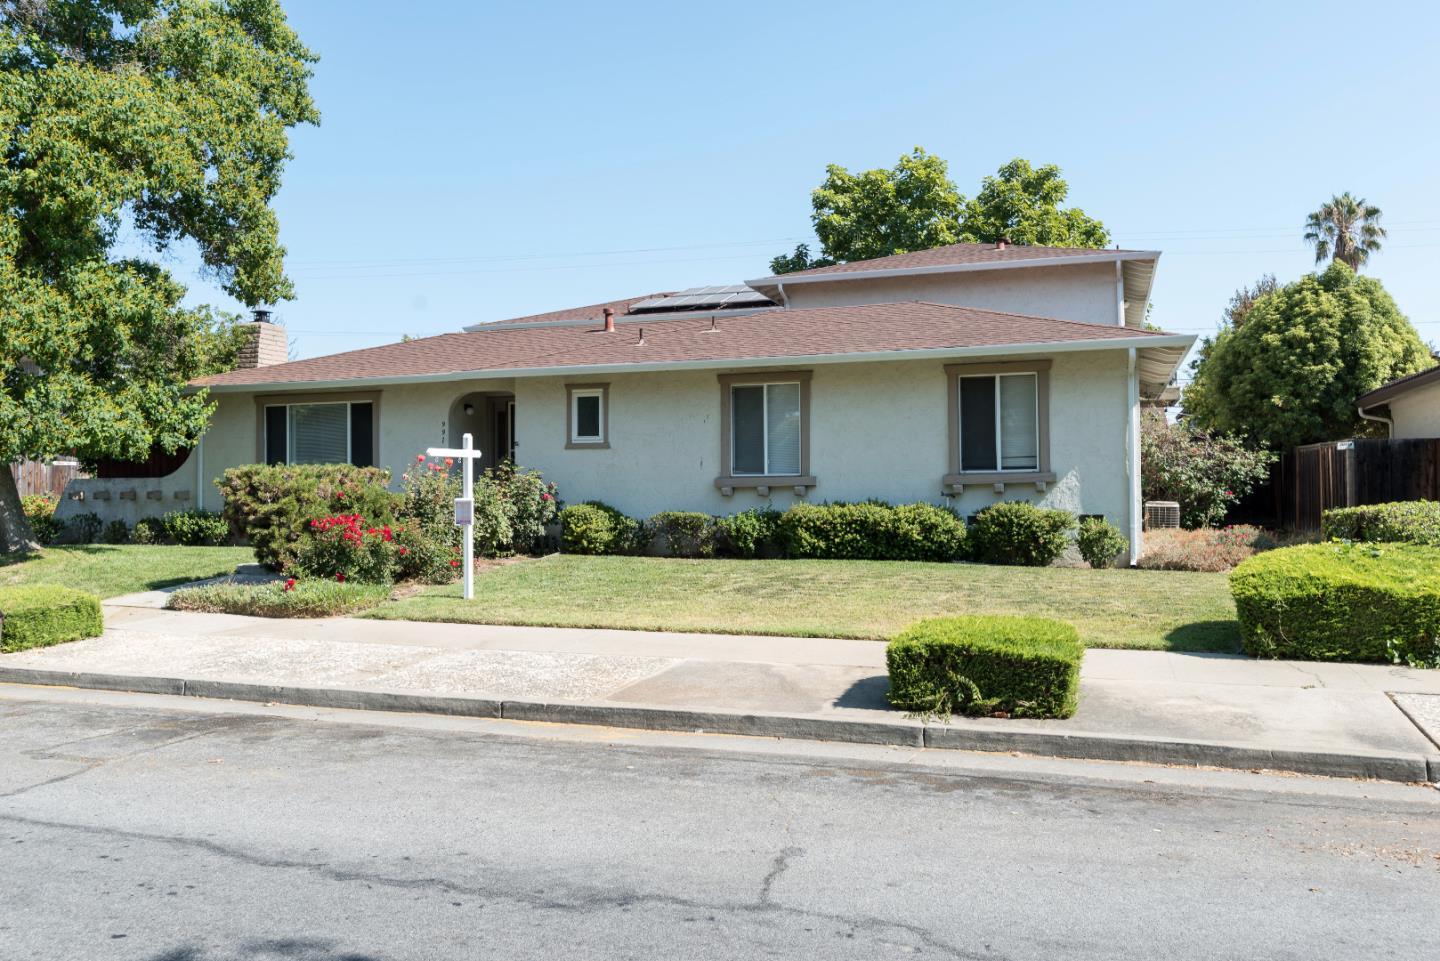 991 Wren Drive San Jose, CA 95125 - MLS #: ML81718624